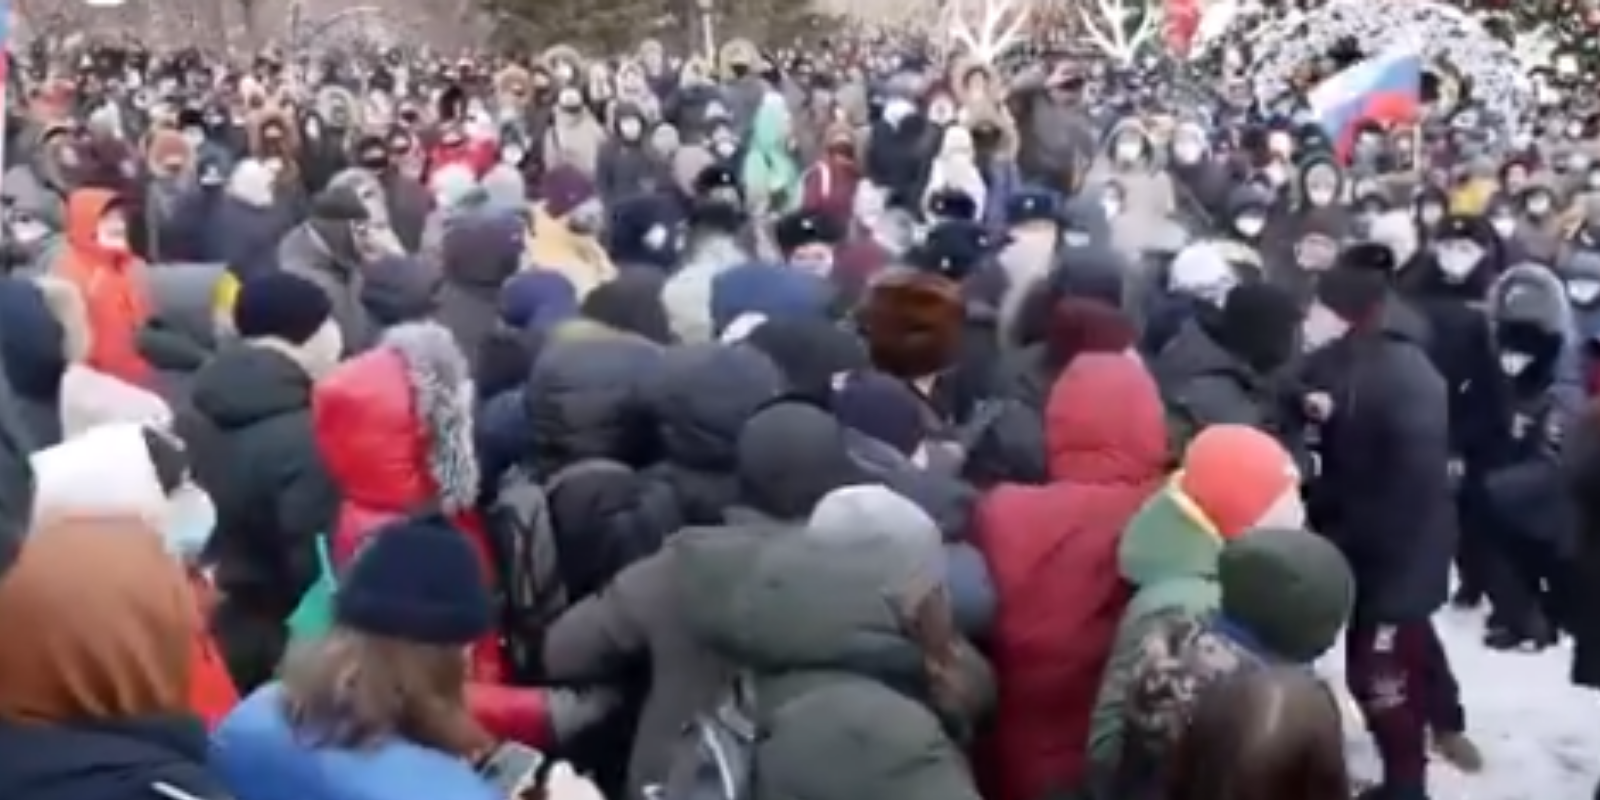 Massive protests in Russia have led to over 2000 arrests